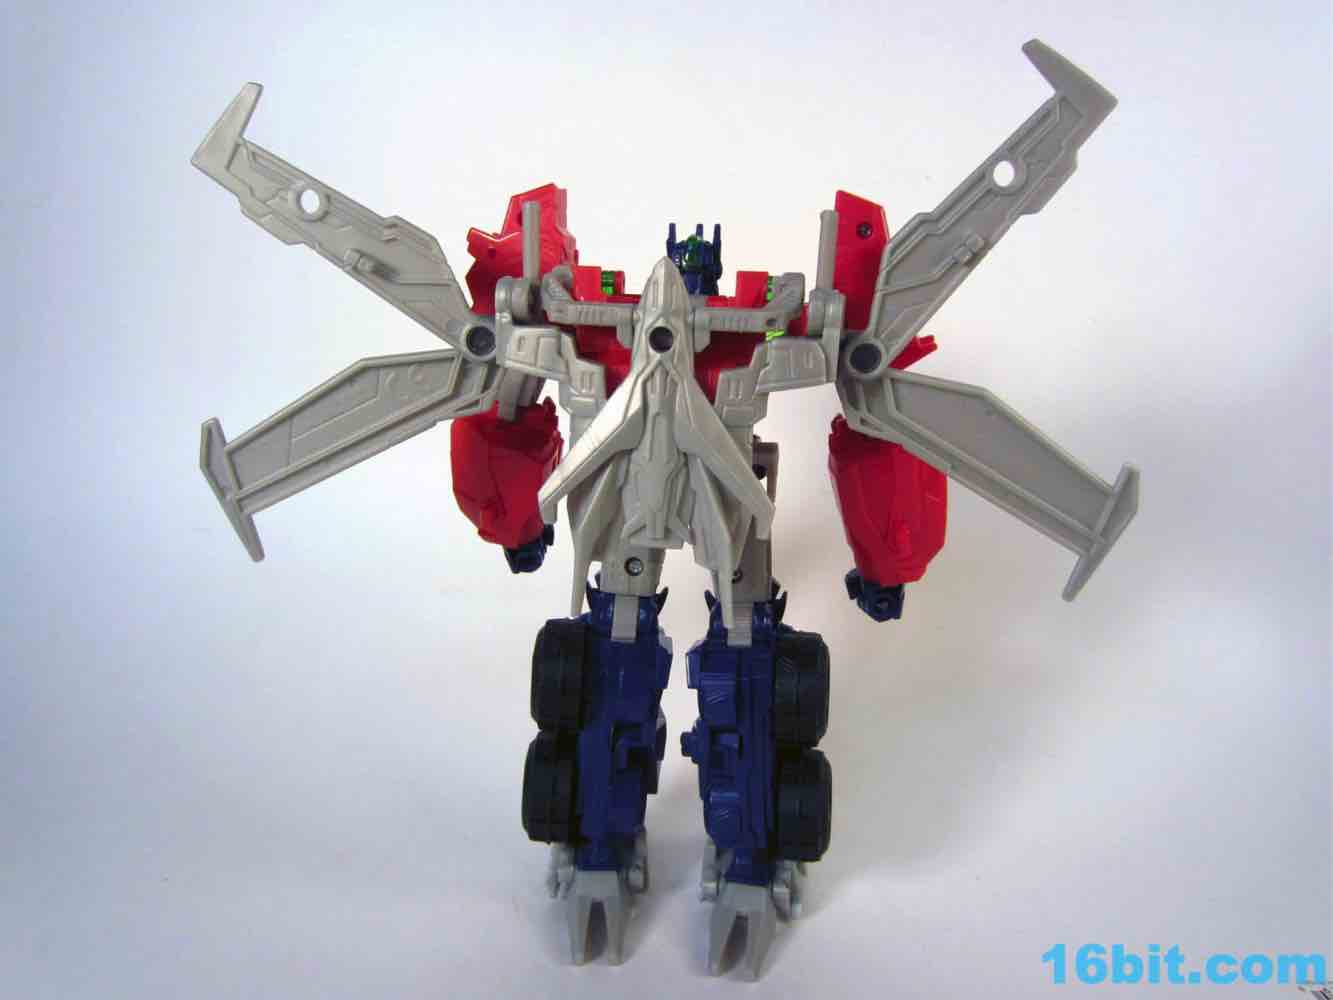 16bit.com Figure of the Day Review: Hasbro Transformers ...